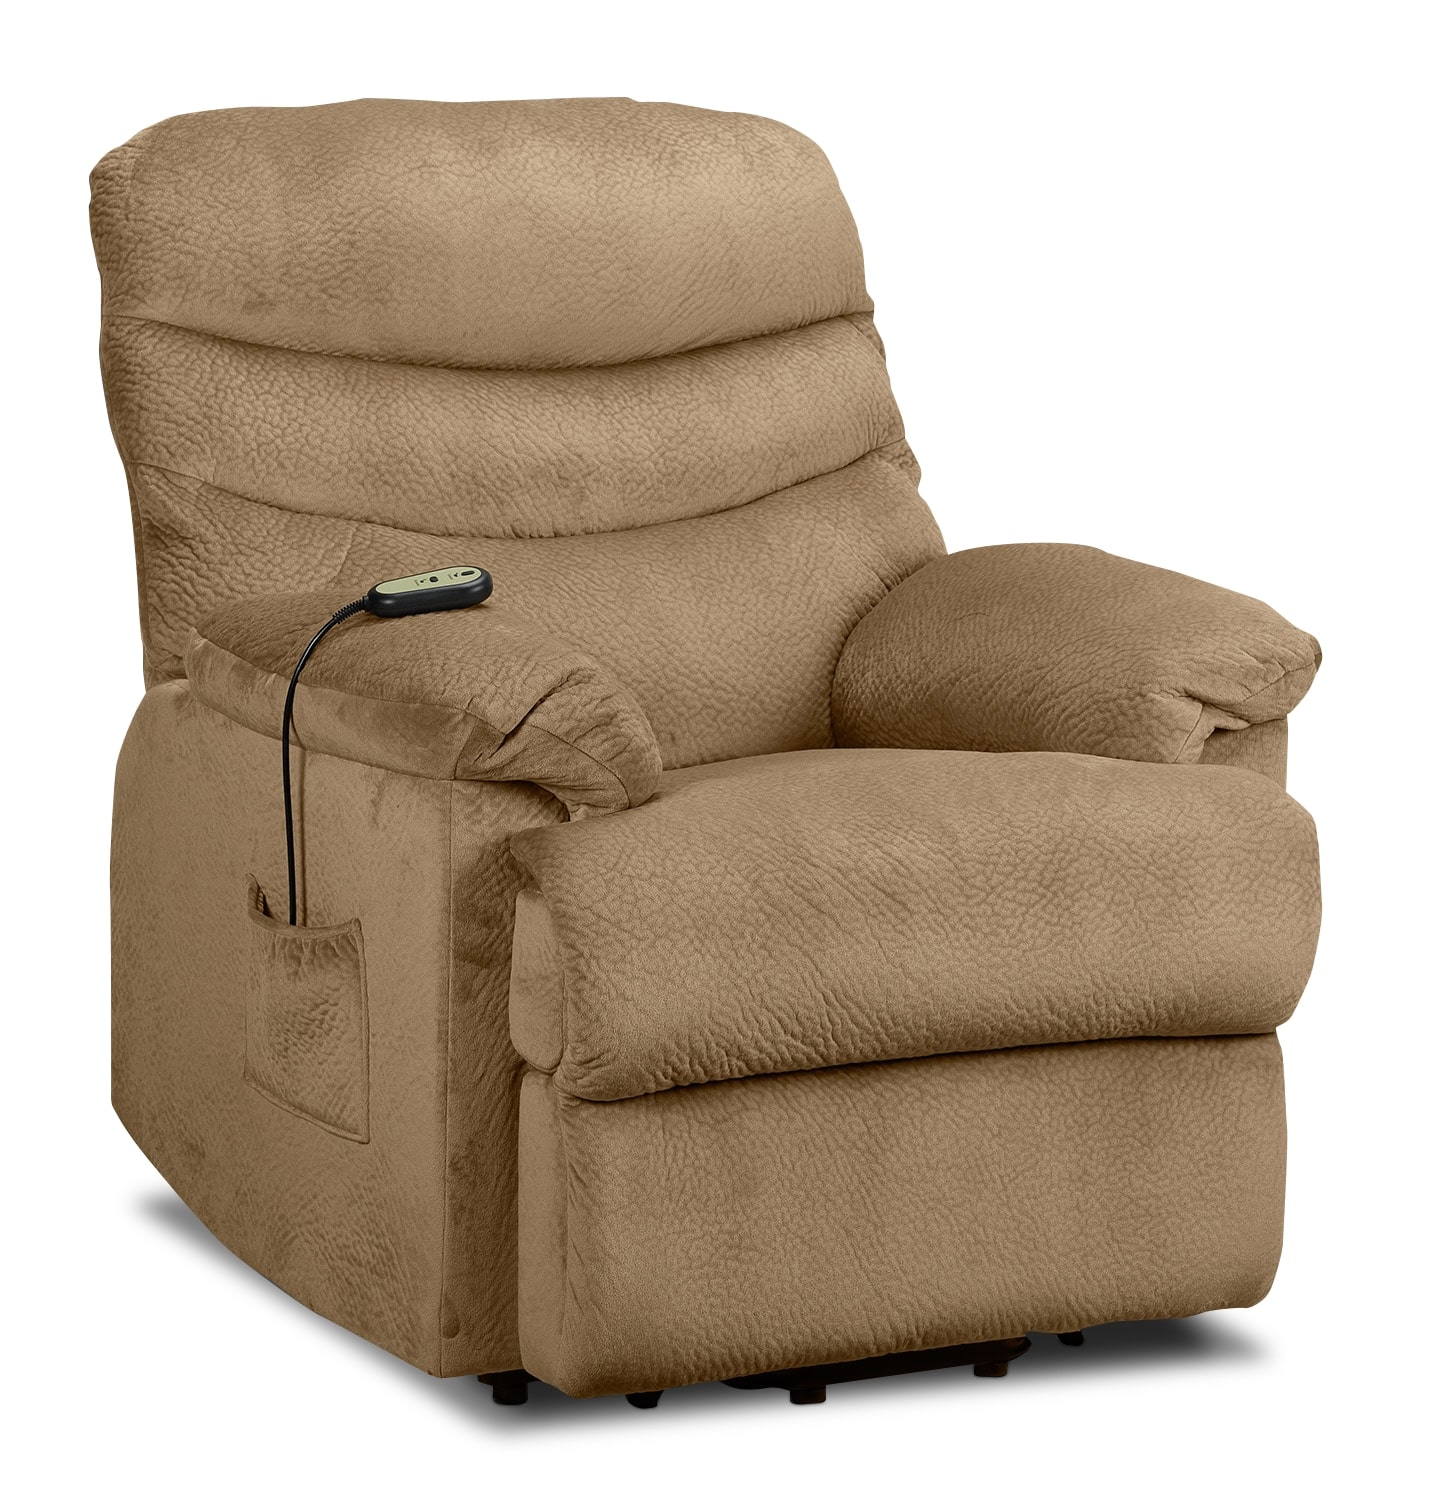 Living Room Furniture - Bradey Power Lift Recliner - Camel